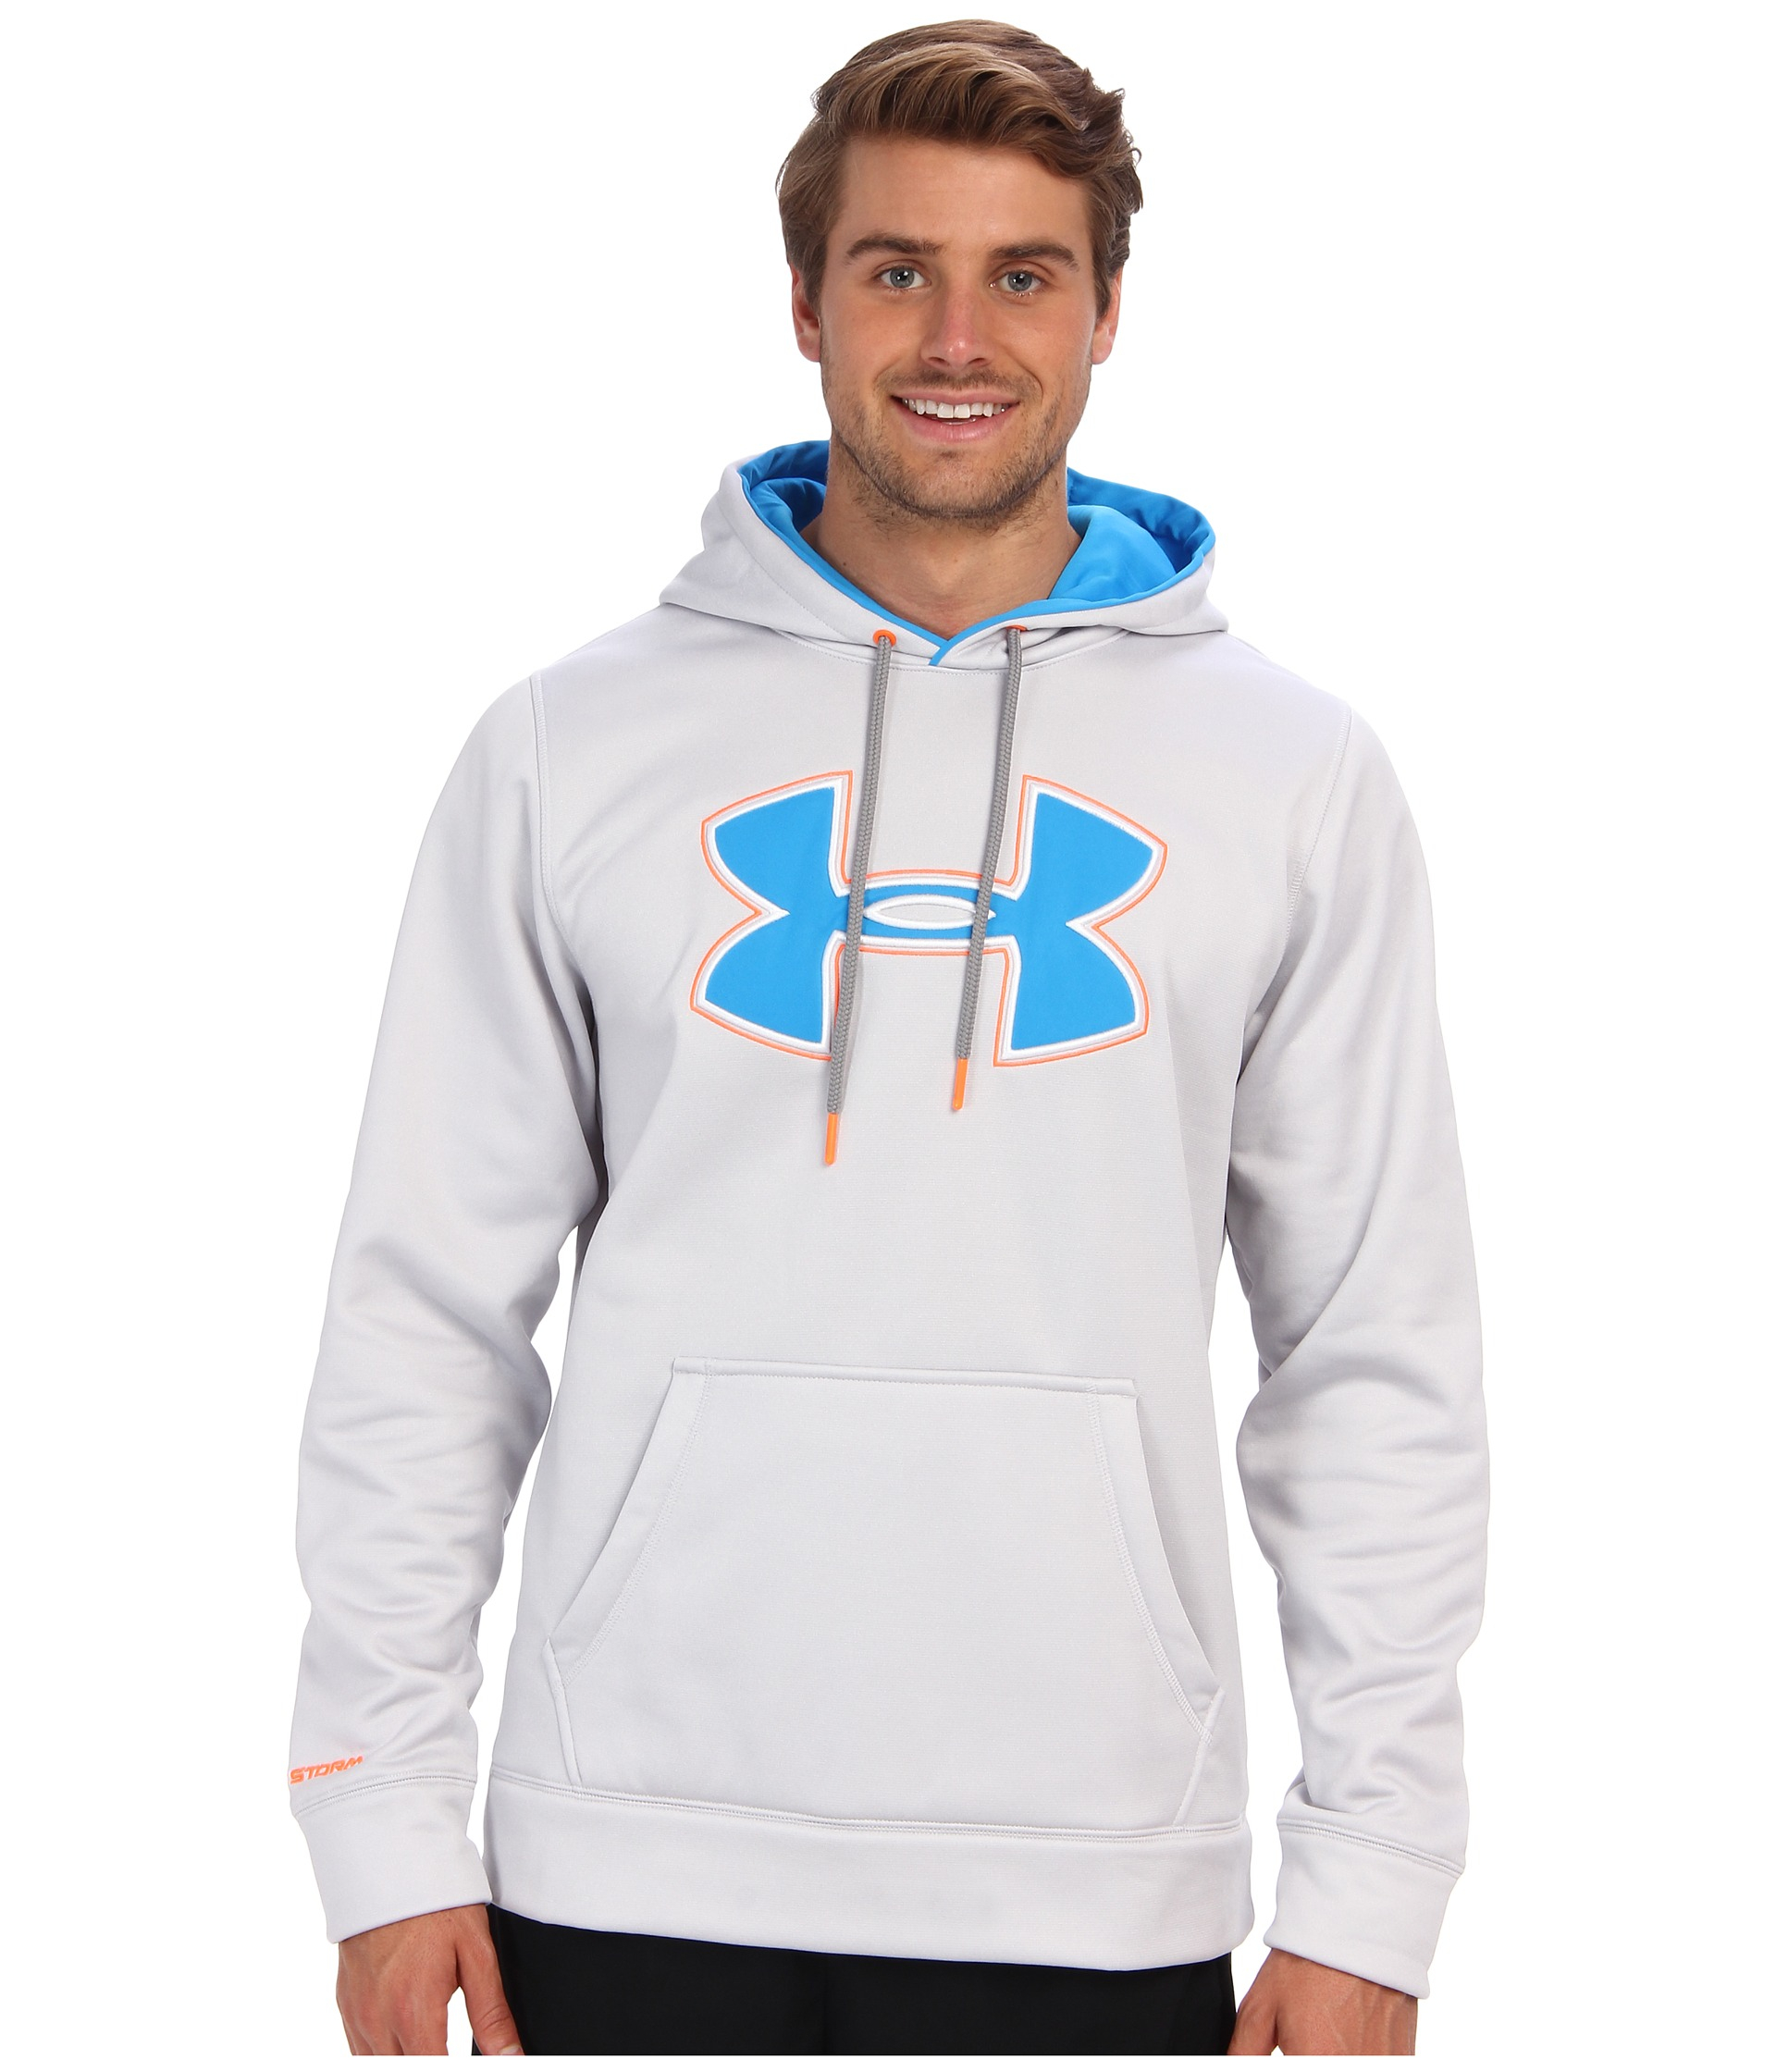 57f6ea59 Under Armour Armour® Fleece Storm Big Logo Hoodie in White for Men ...